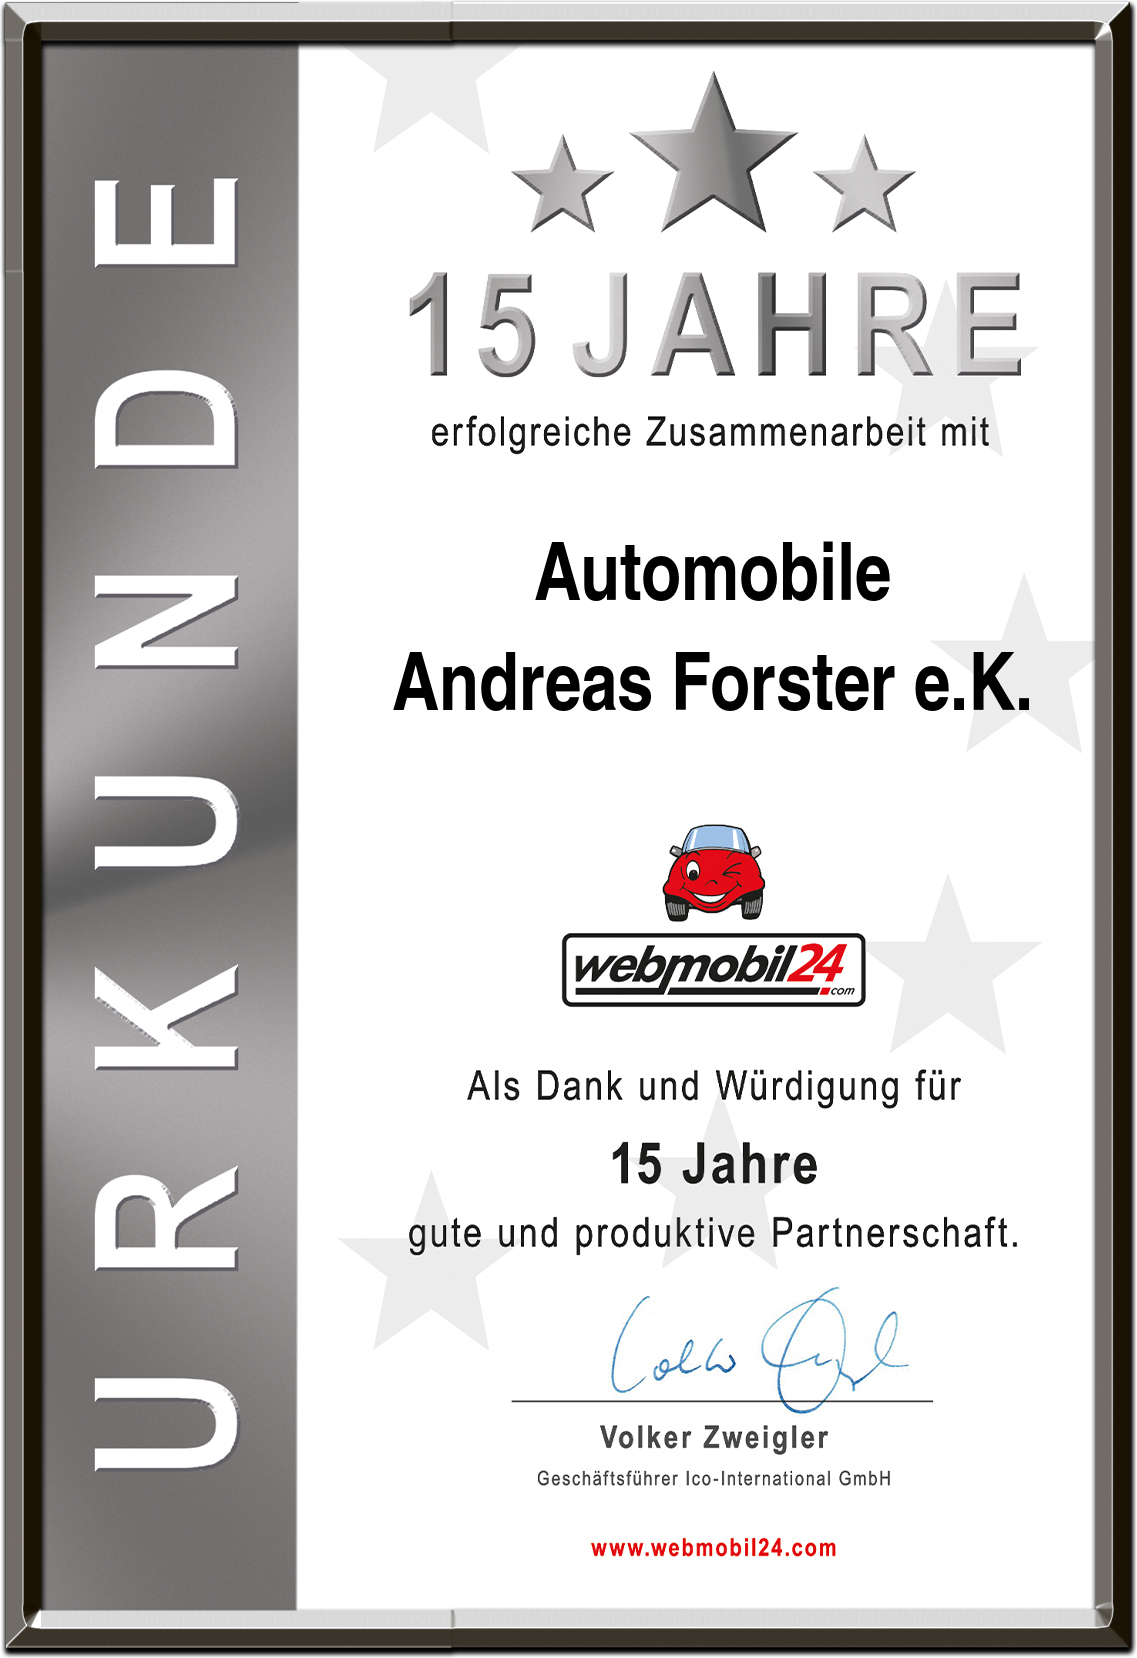 Automobile Andreas Forster e.K.